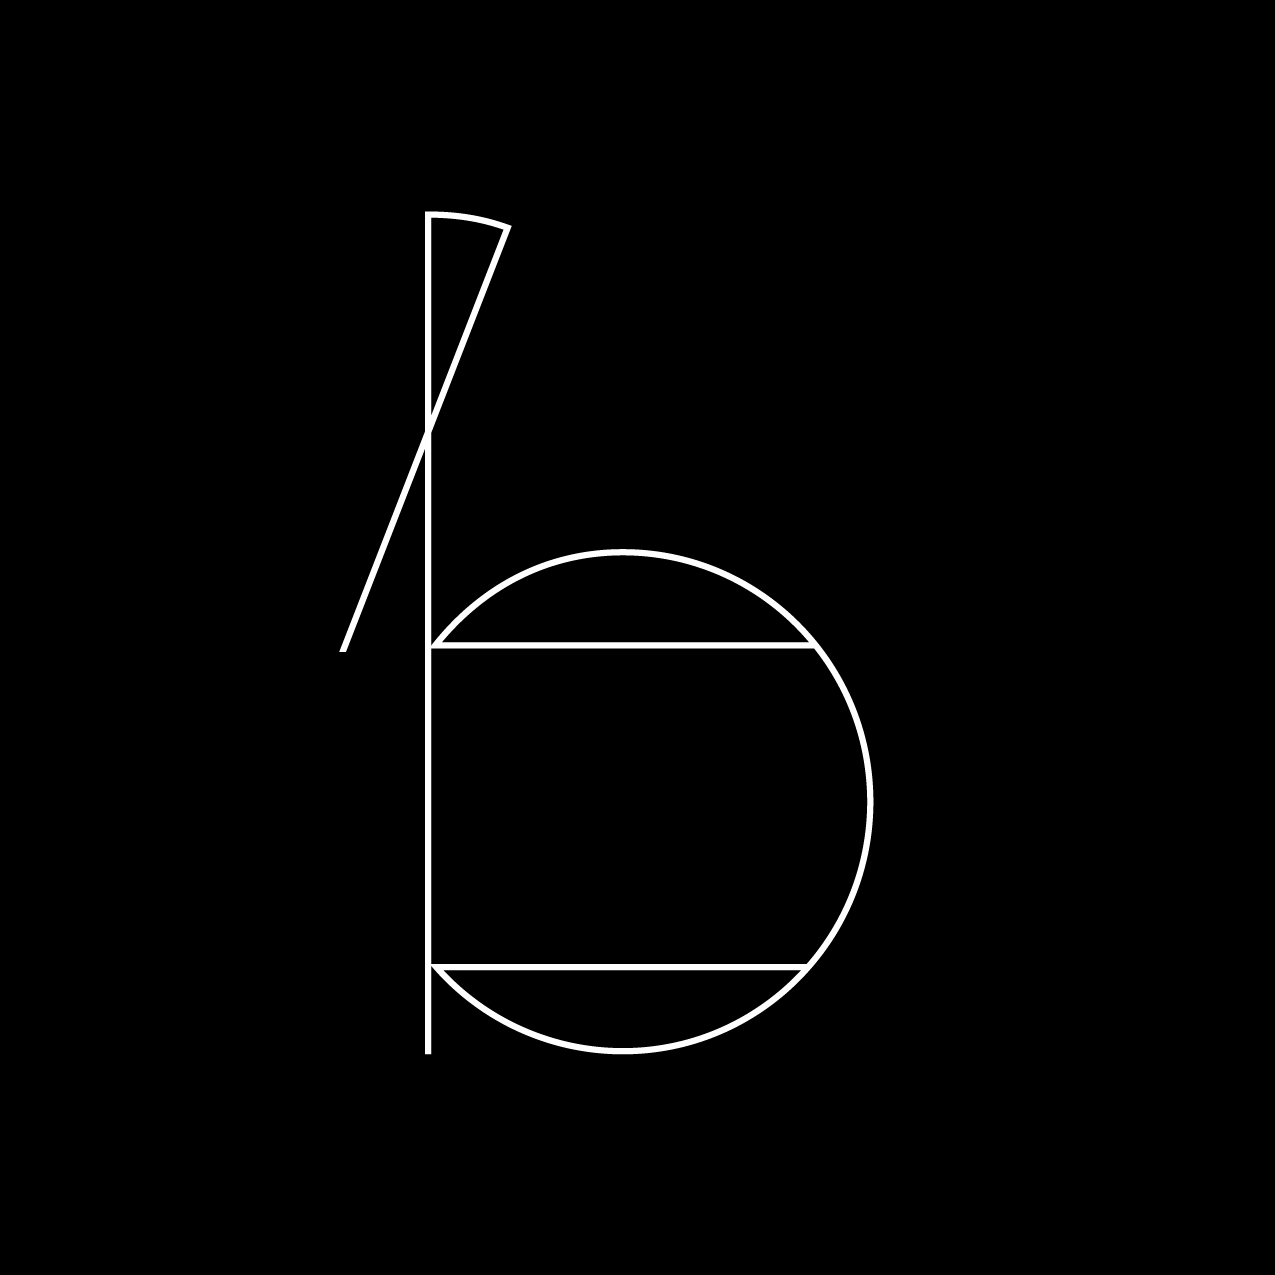 Letter B5 design by Furia